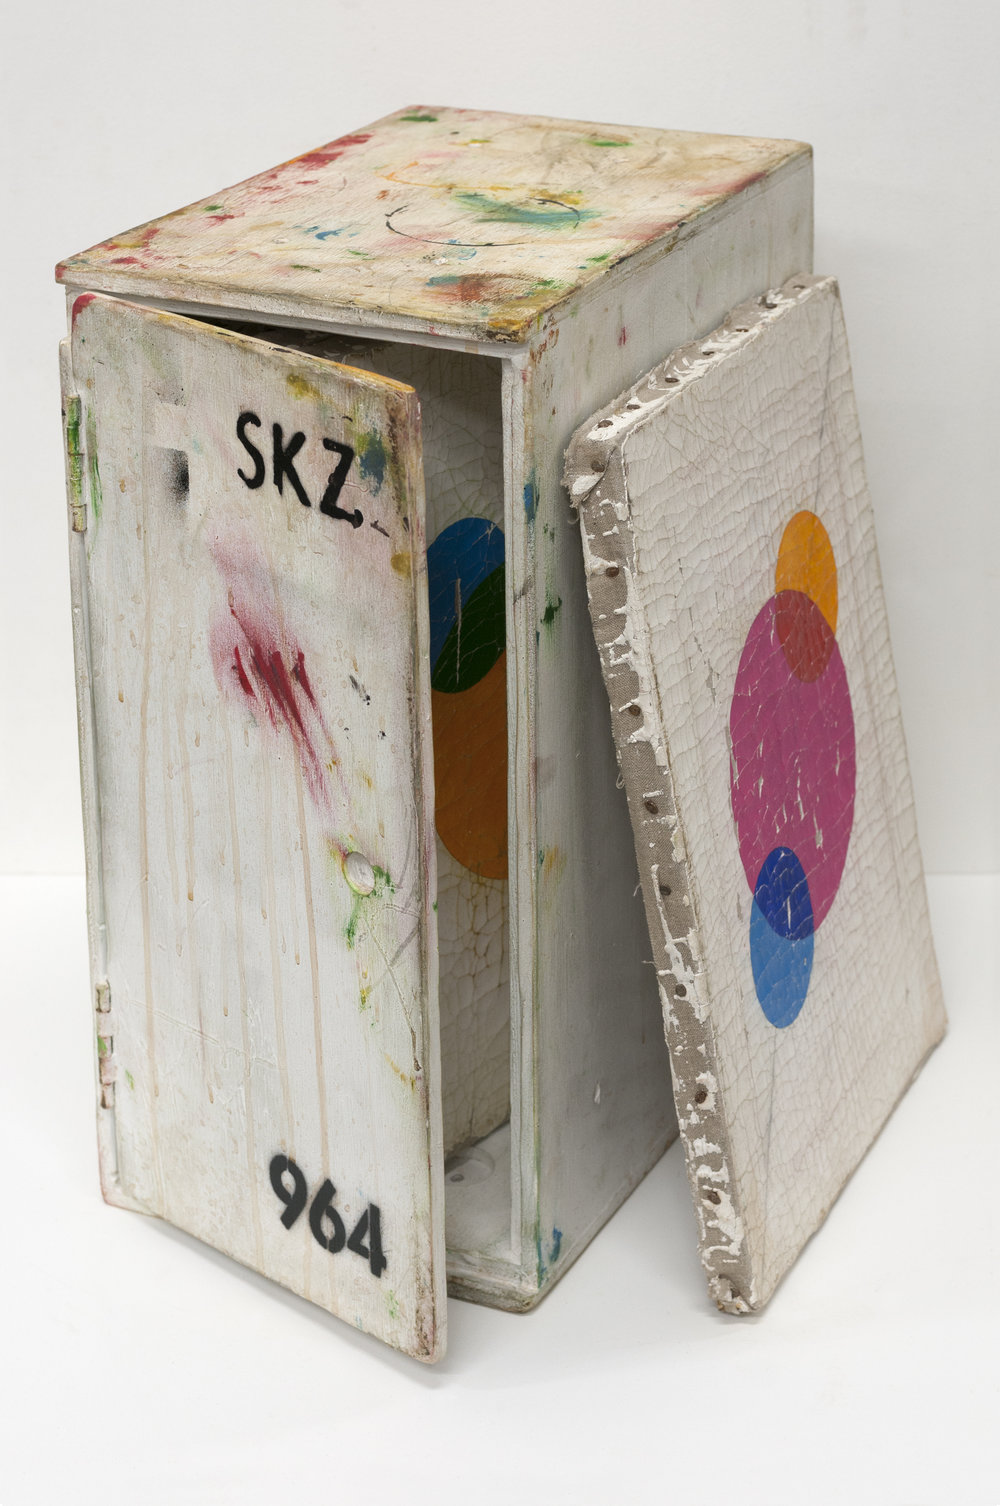 SKZ Student Painting Storage Box Number 964, 2018 paint on plywood 50 x 25 x 26 cm 19 11/16 x 9 27/32 x 14 3/16 inches